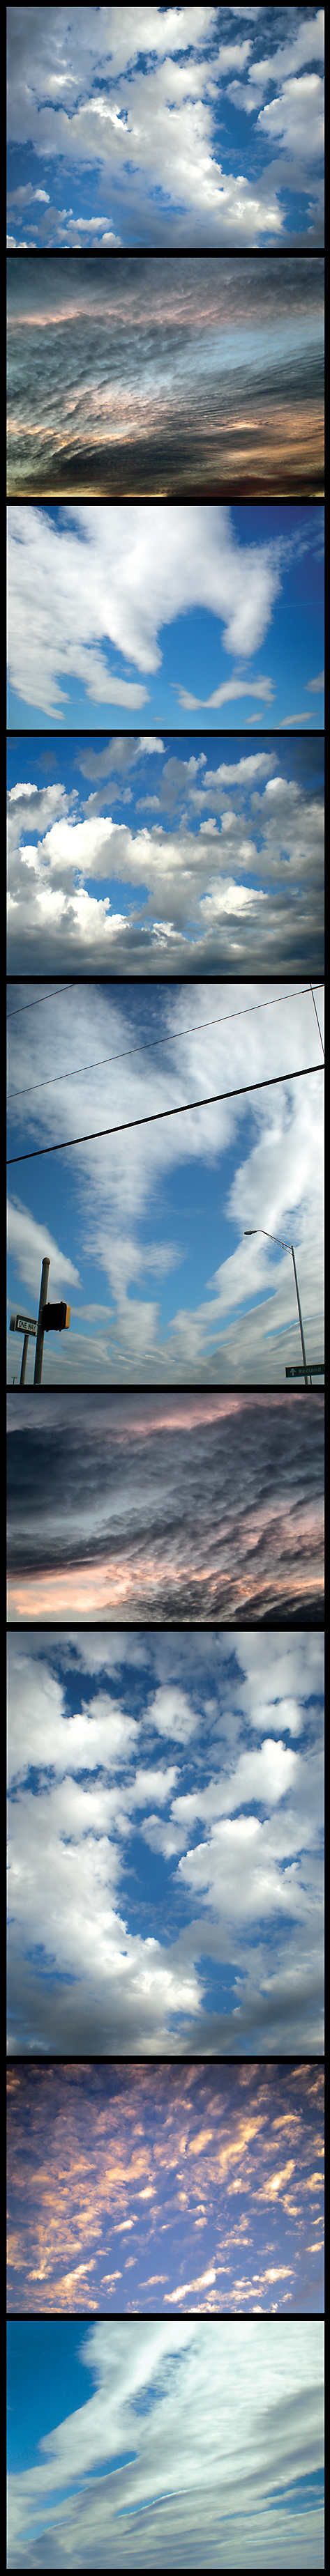 texascloudcollage